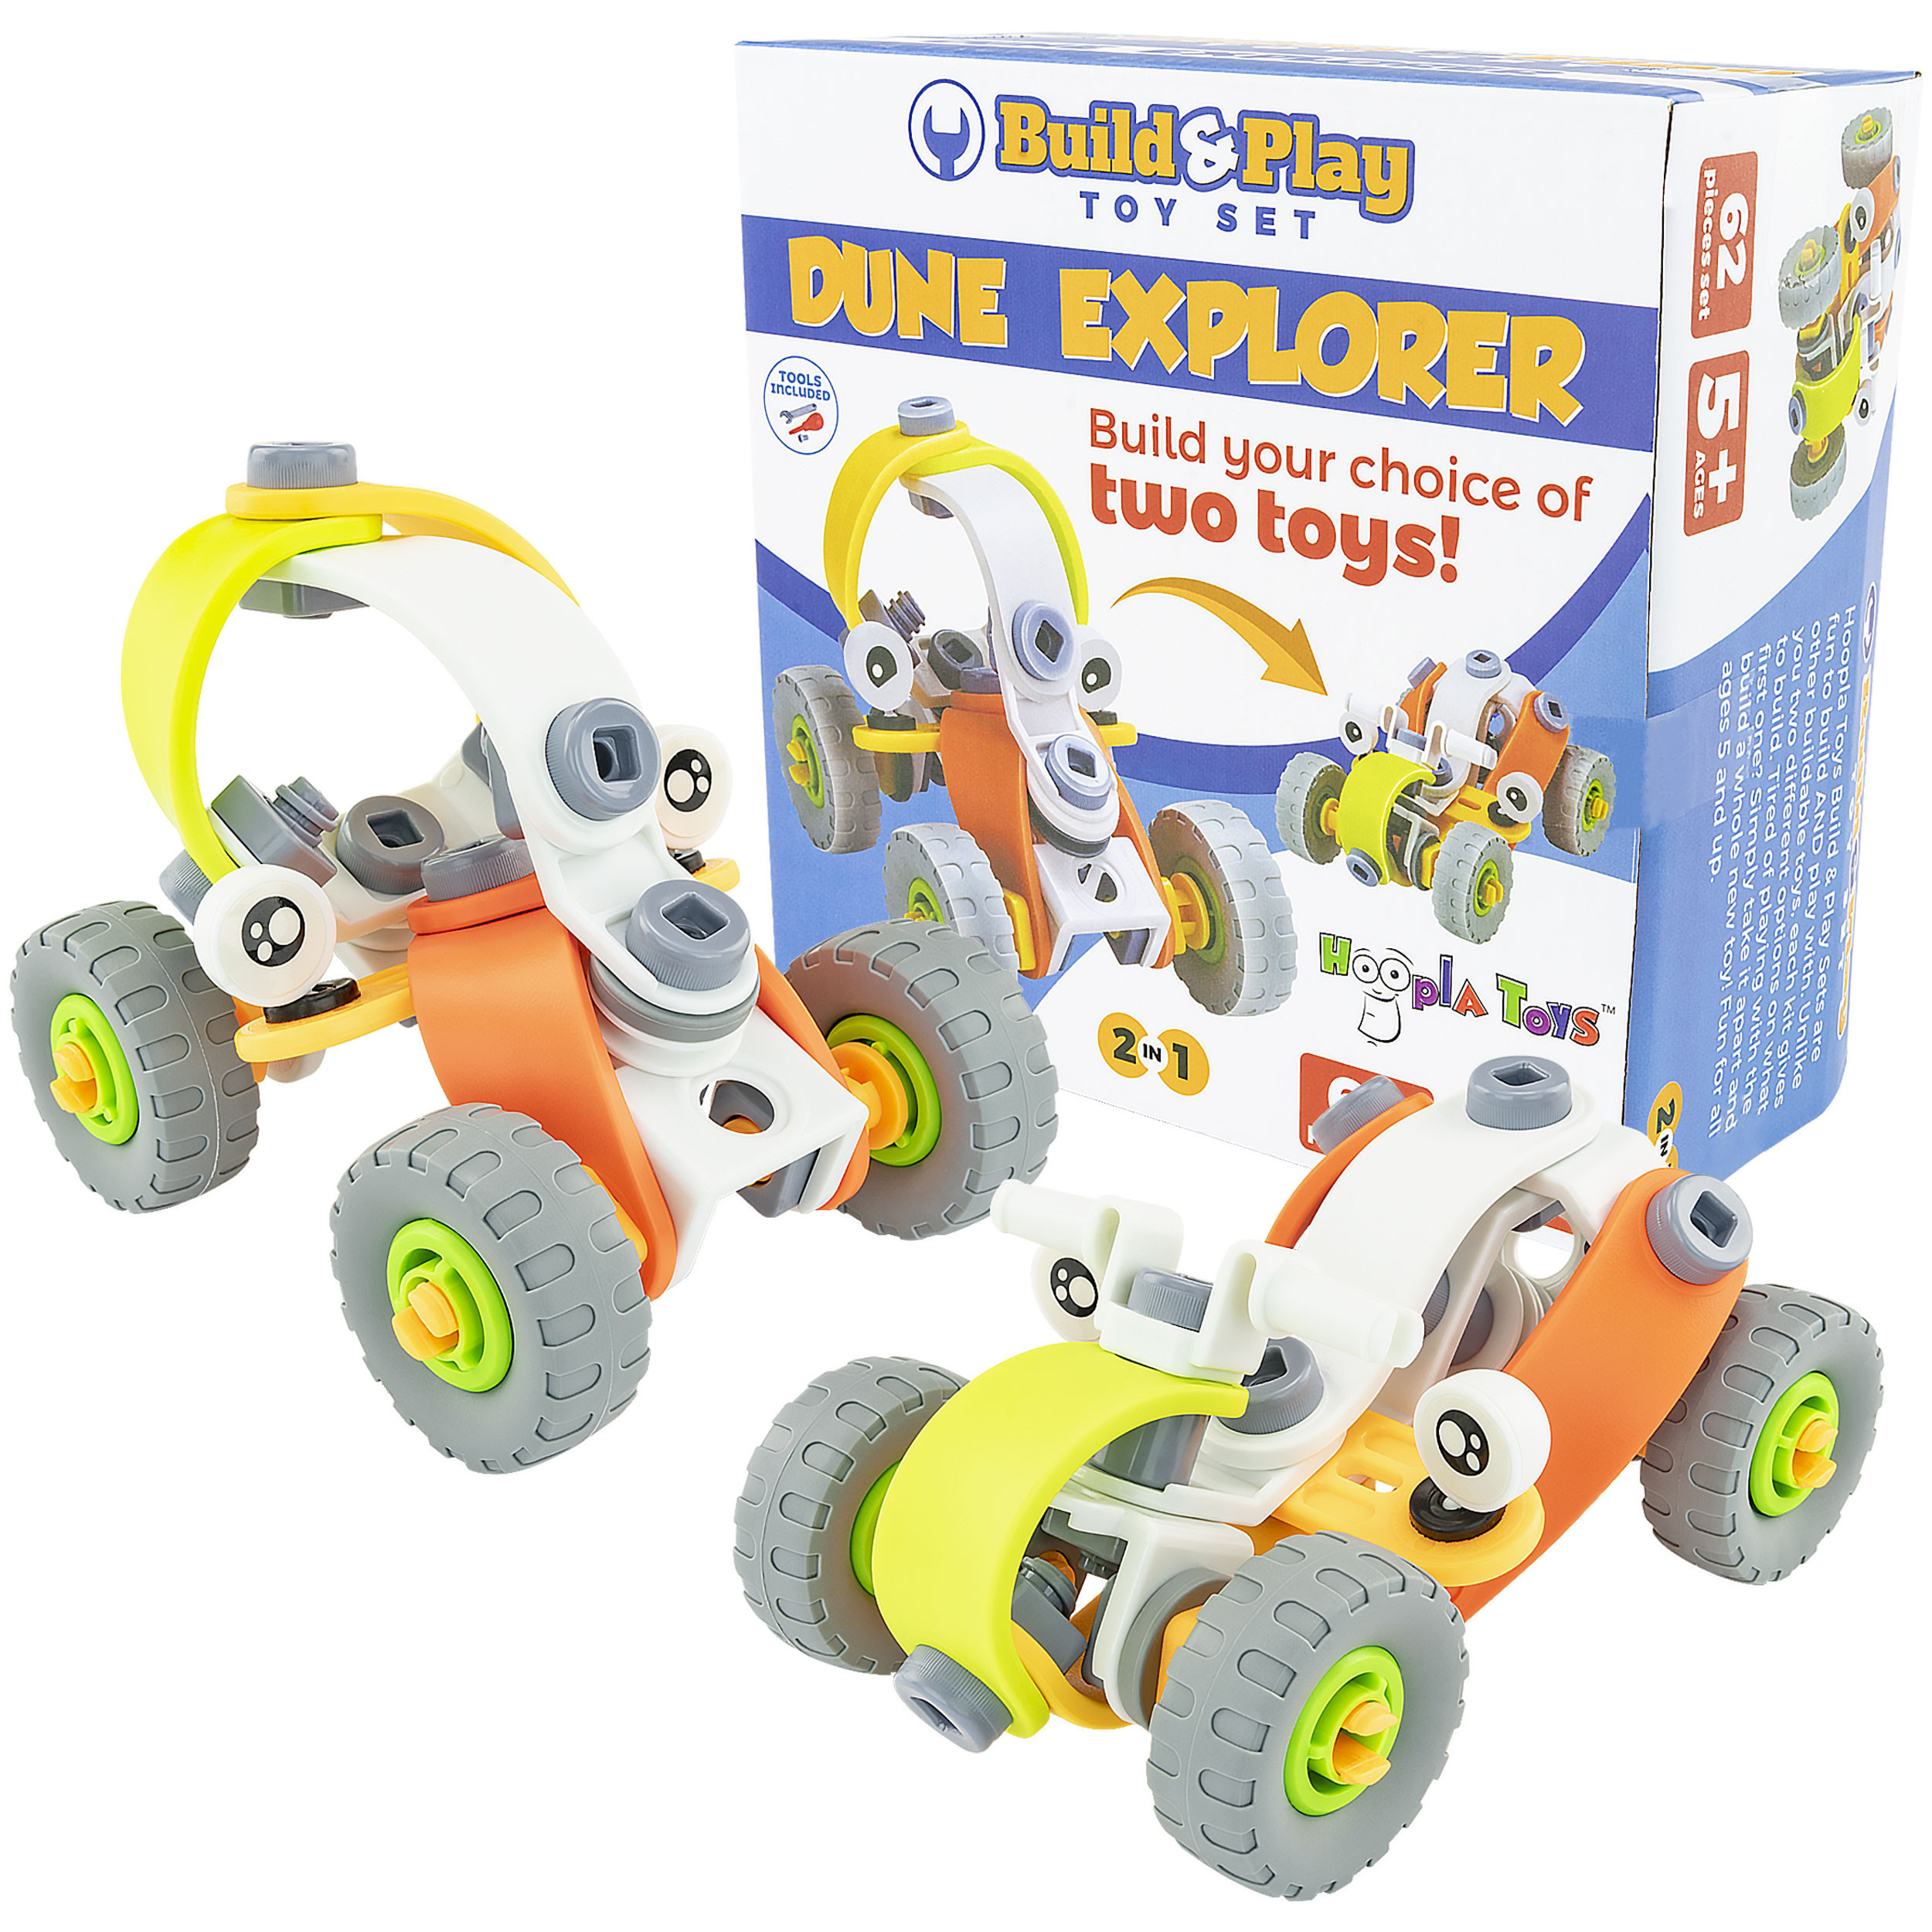 Build and Play Toy Set Box 1